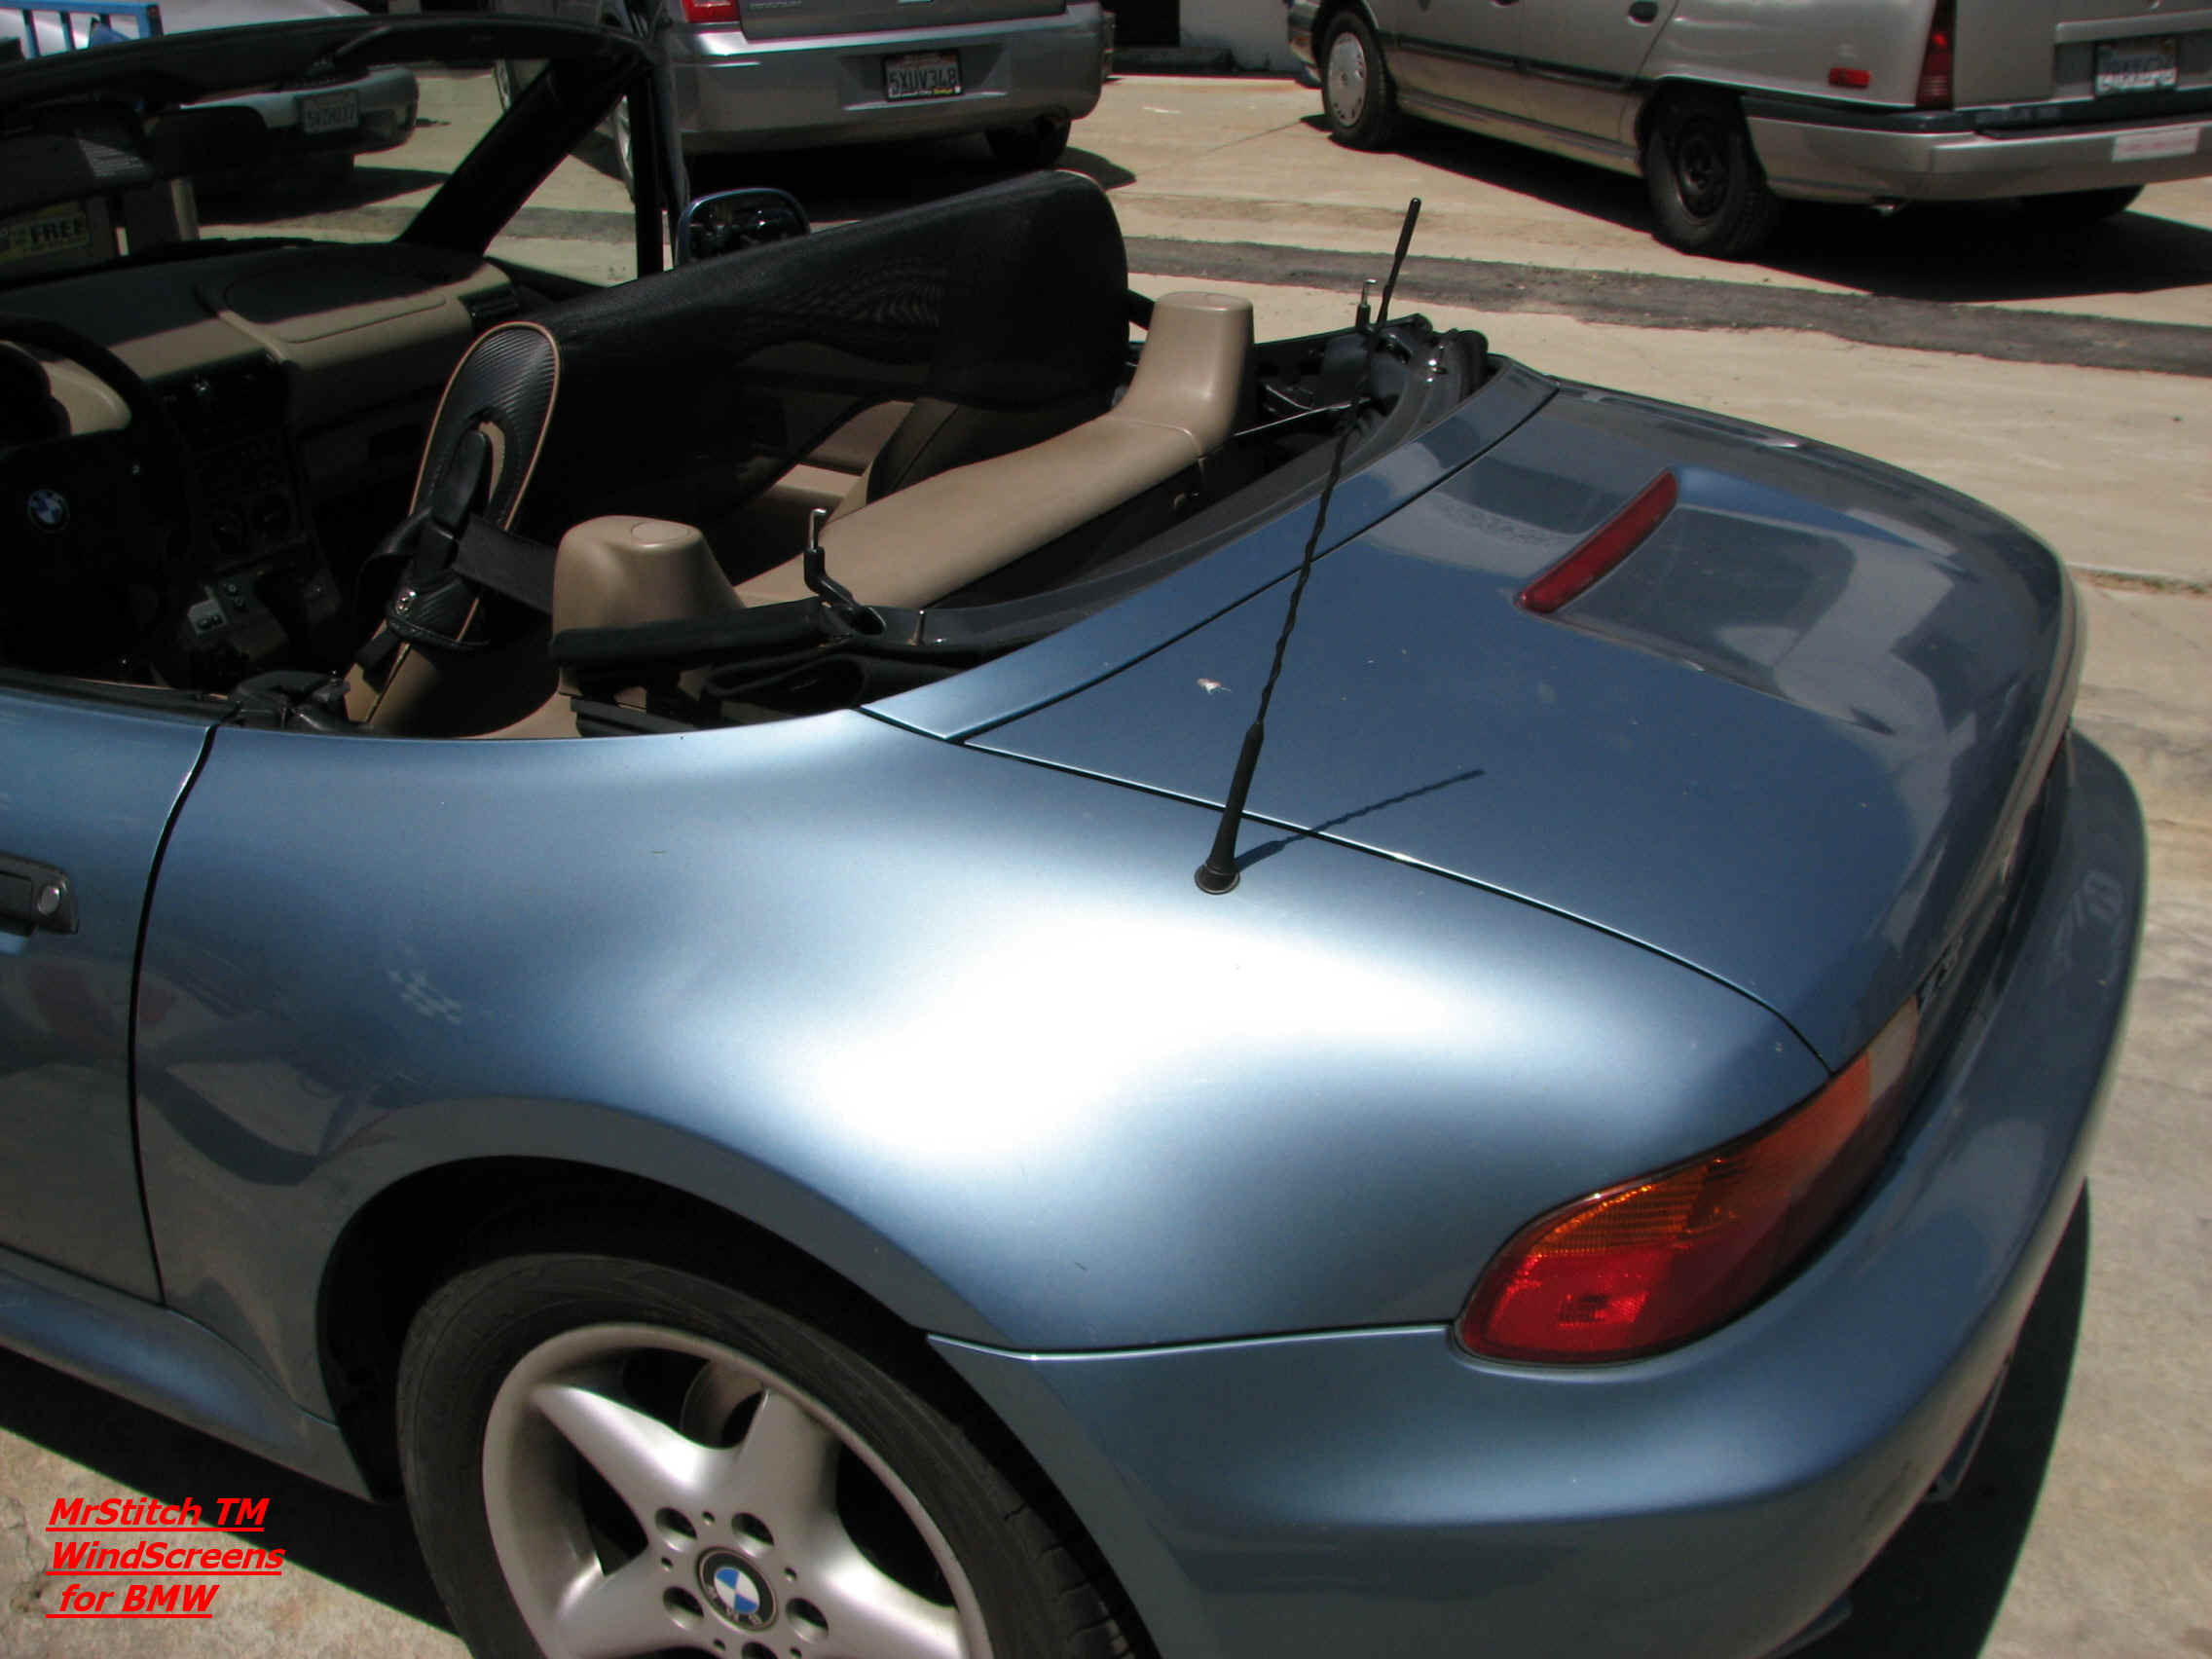 bmw z3 windscreen 0jpg 2277446 bytes bmw z3 office chair jpg